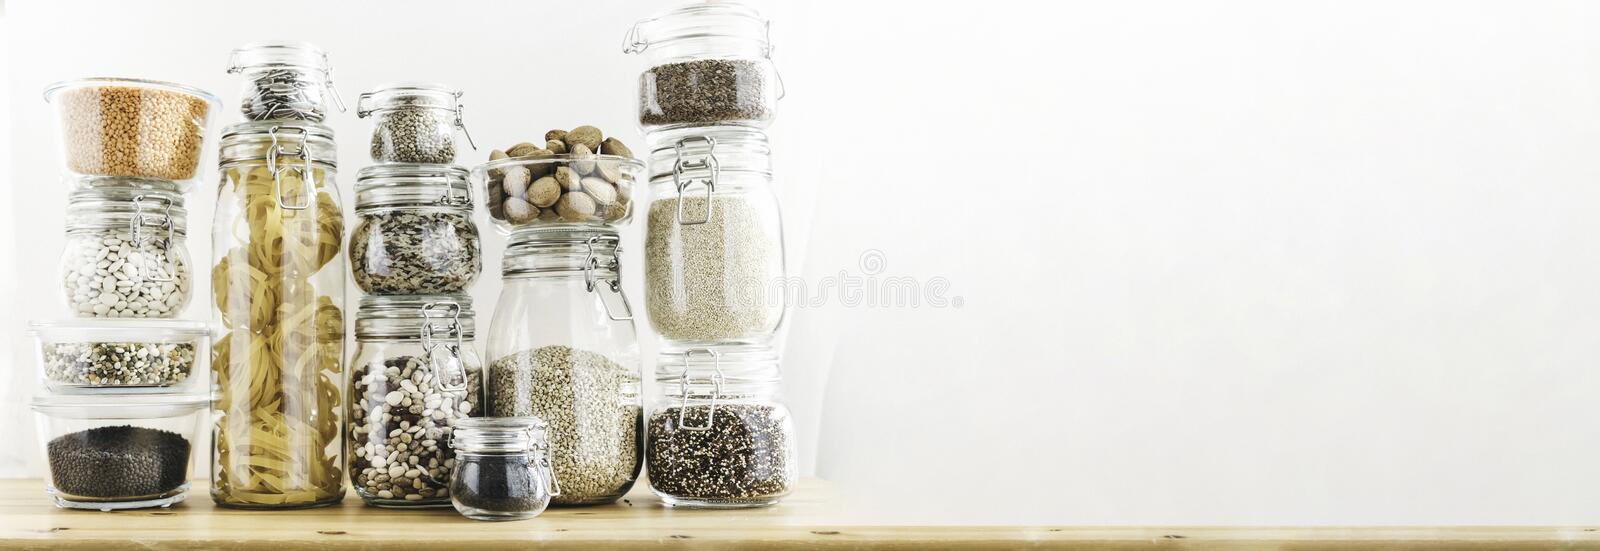 Banner with assortment of grain products and pasta in glass storage containers on wooden table. Healthy cooking, clean. Eating, zero waste concept. Balanced royalty free stock photos